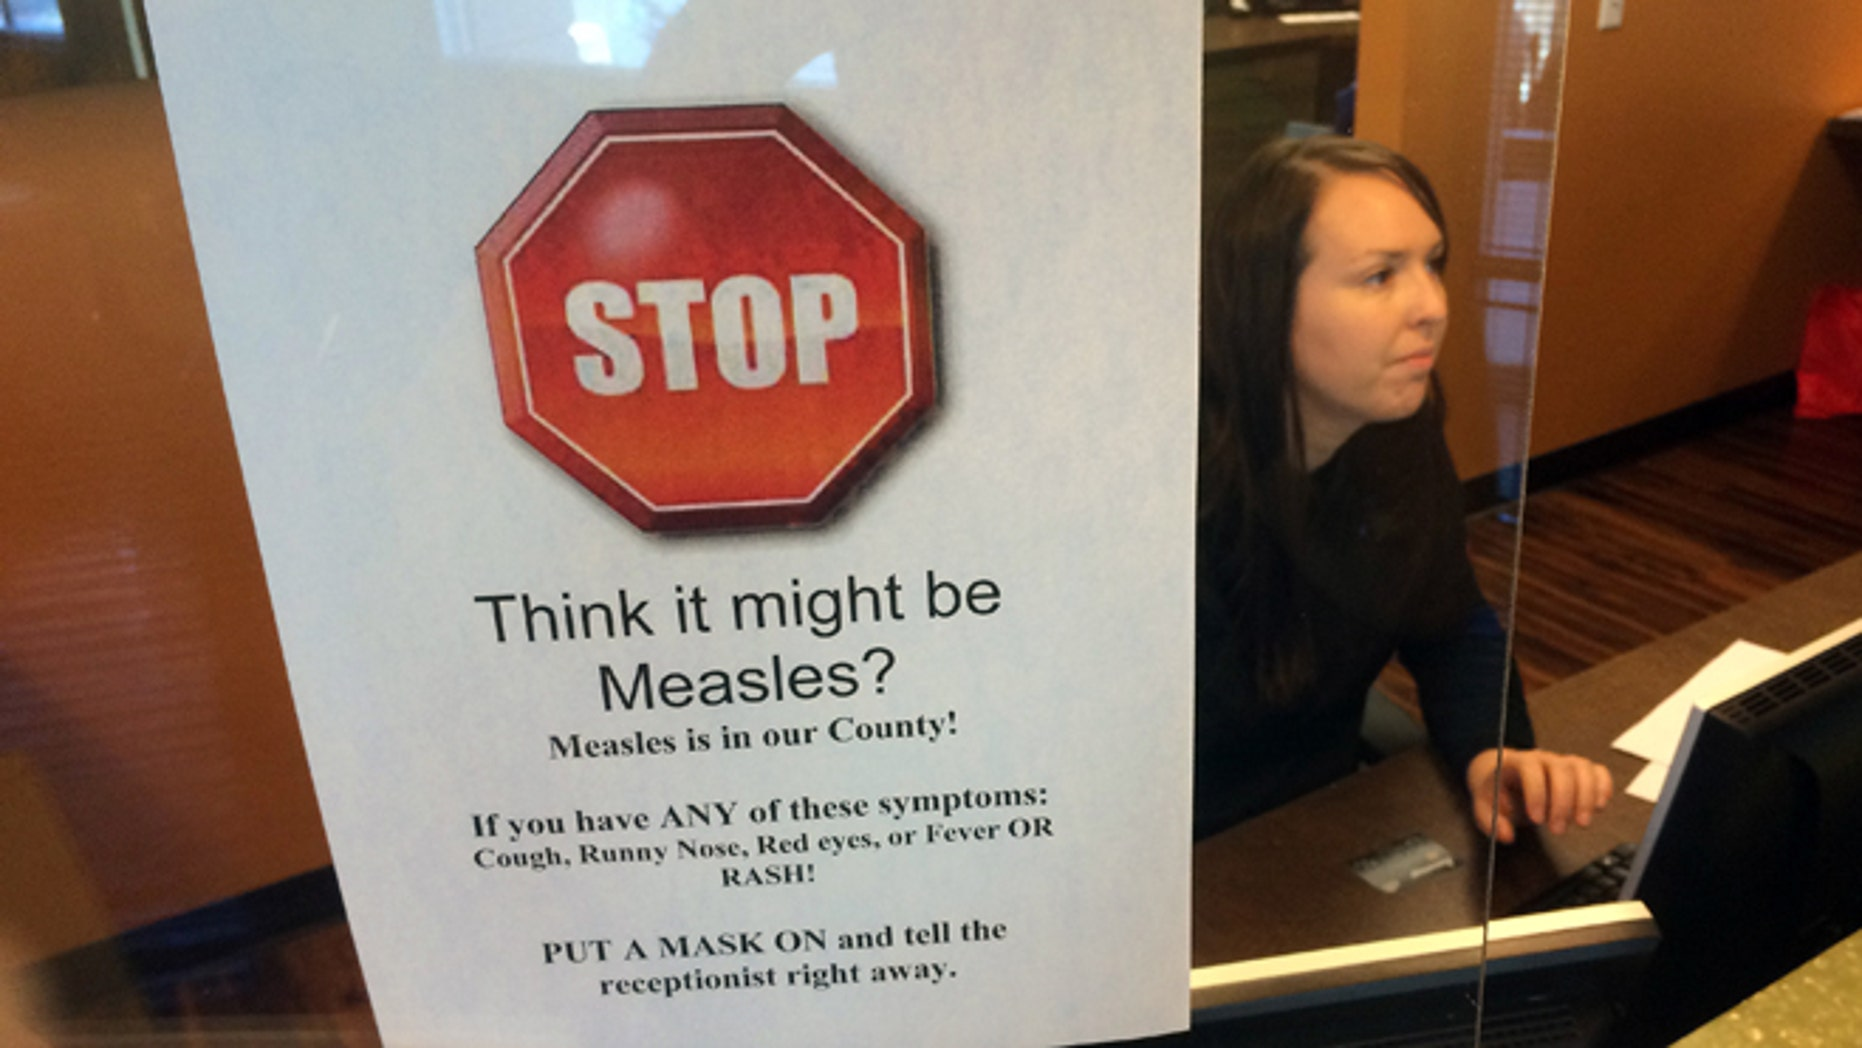 FILE - In this Feb. 7, 2015, file photo, a sign warns of the dangers of measles in the reception area of a pediatrician's office in Scottsdale, Ariz., Saturday, Feb. 7, 2015. Arizona officials are threatening legal action against an immigration detention center south of Phoenix where an outbreak of measles has affected 22 this year, Thursday, July 7, 2016. (AP Photo/Tom Stathis, File)